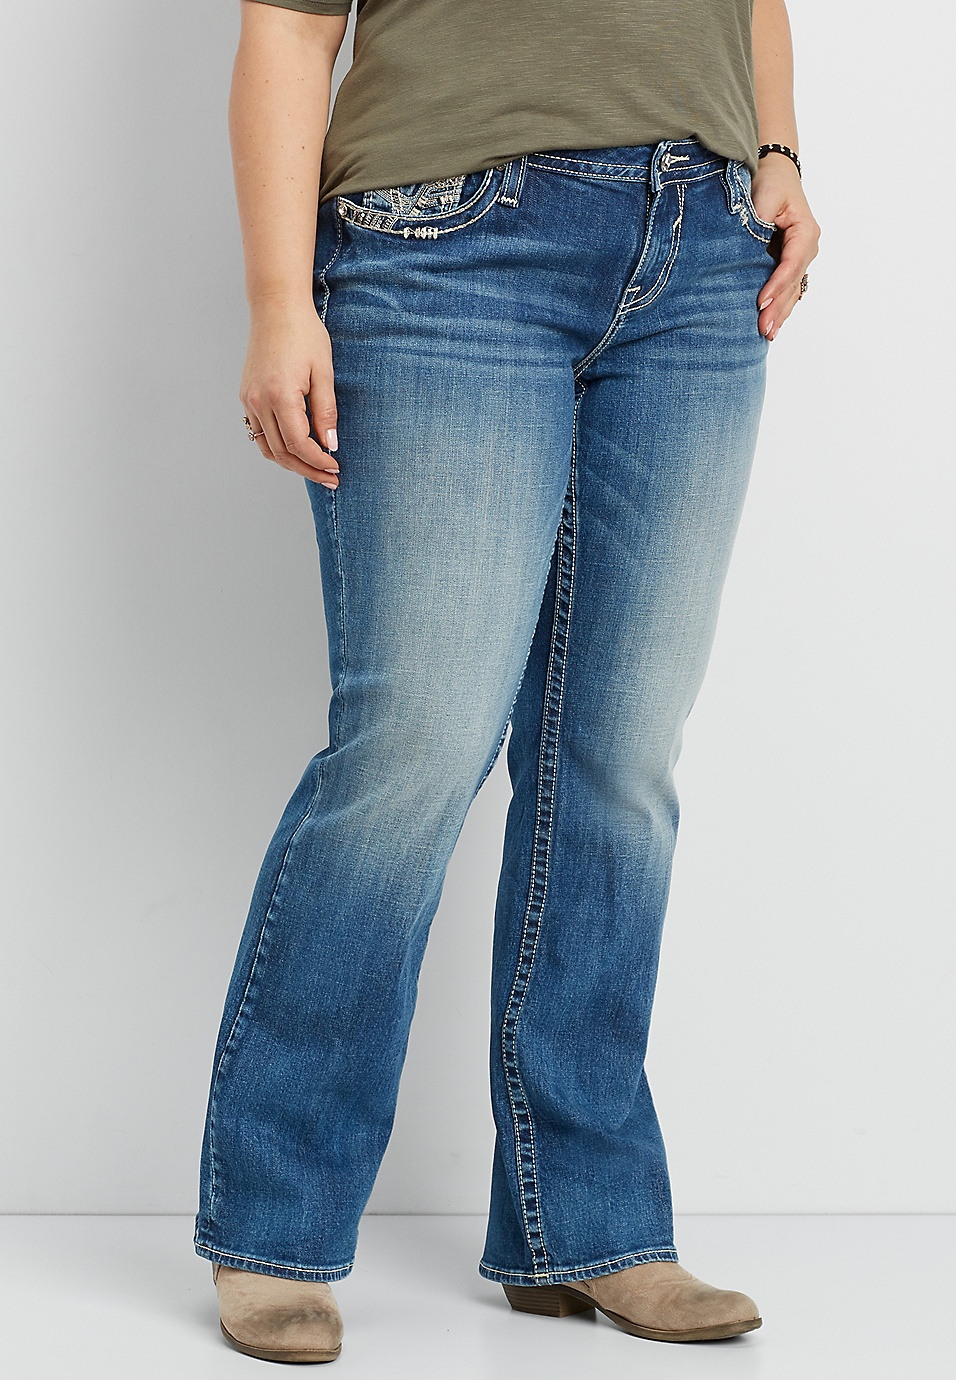 415f948d9c5 Vigoss® plus size slim boot jeans with embellished double back pockets